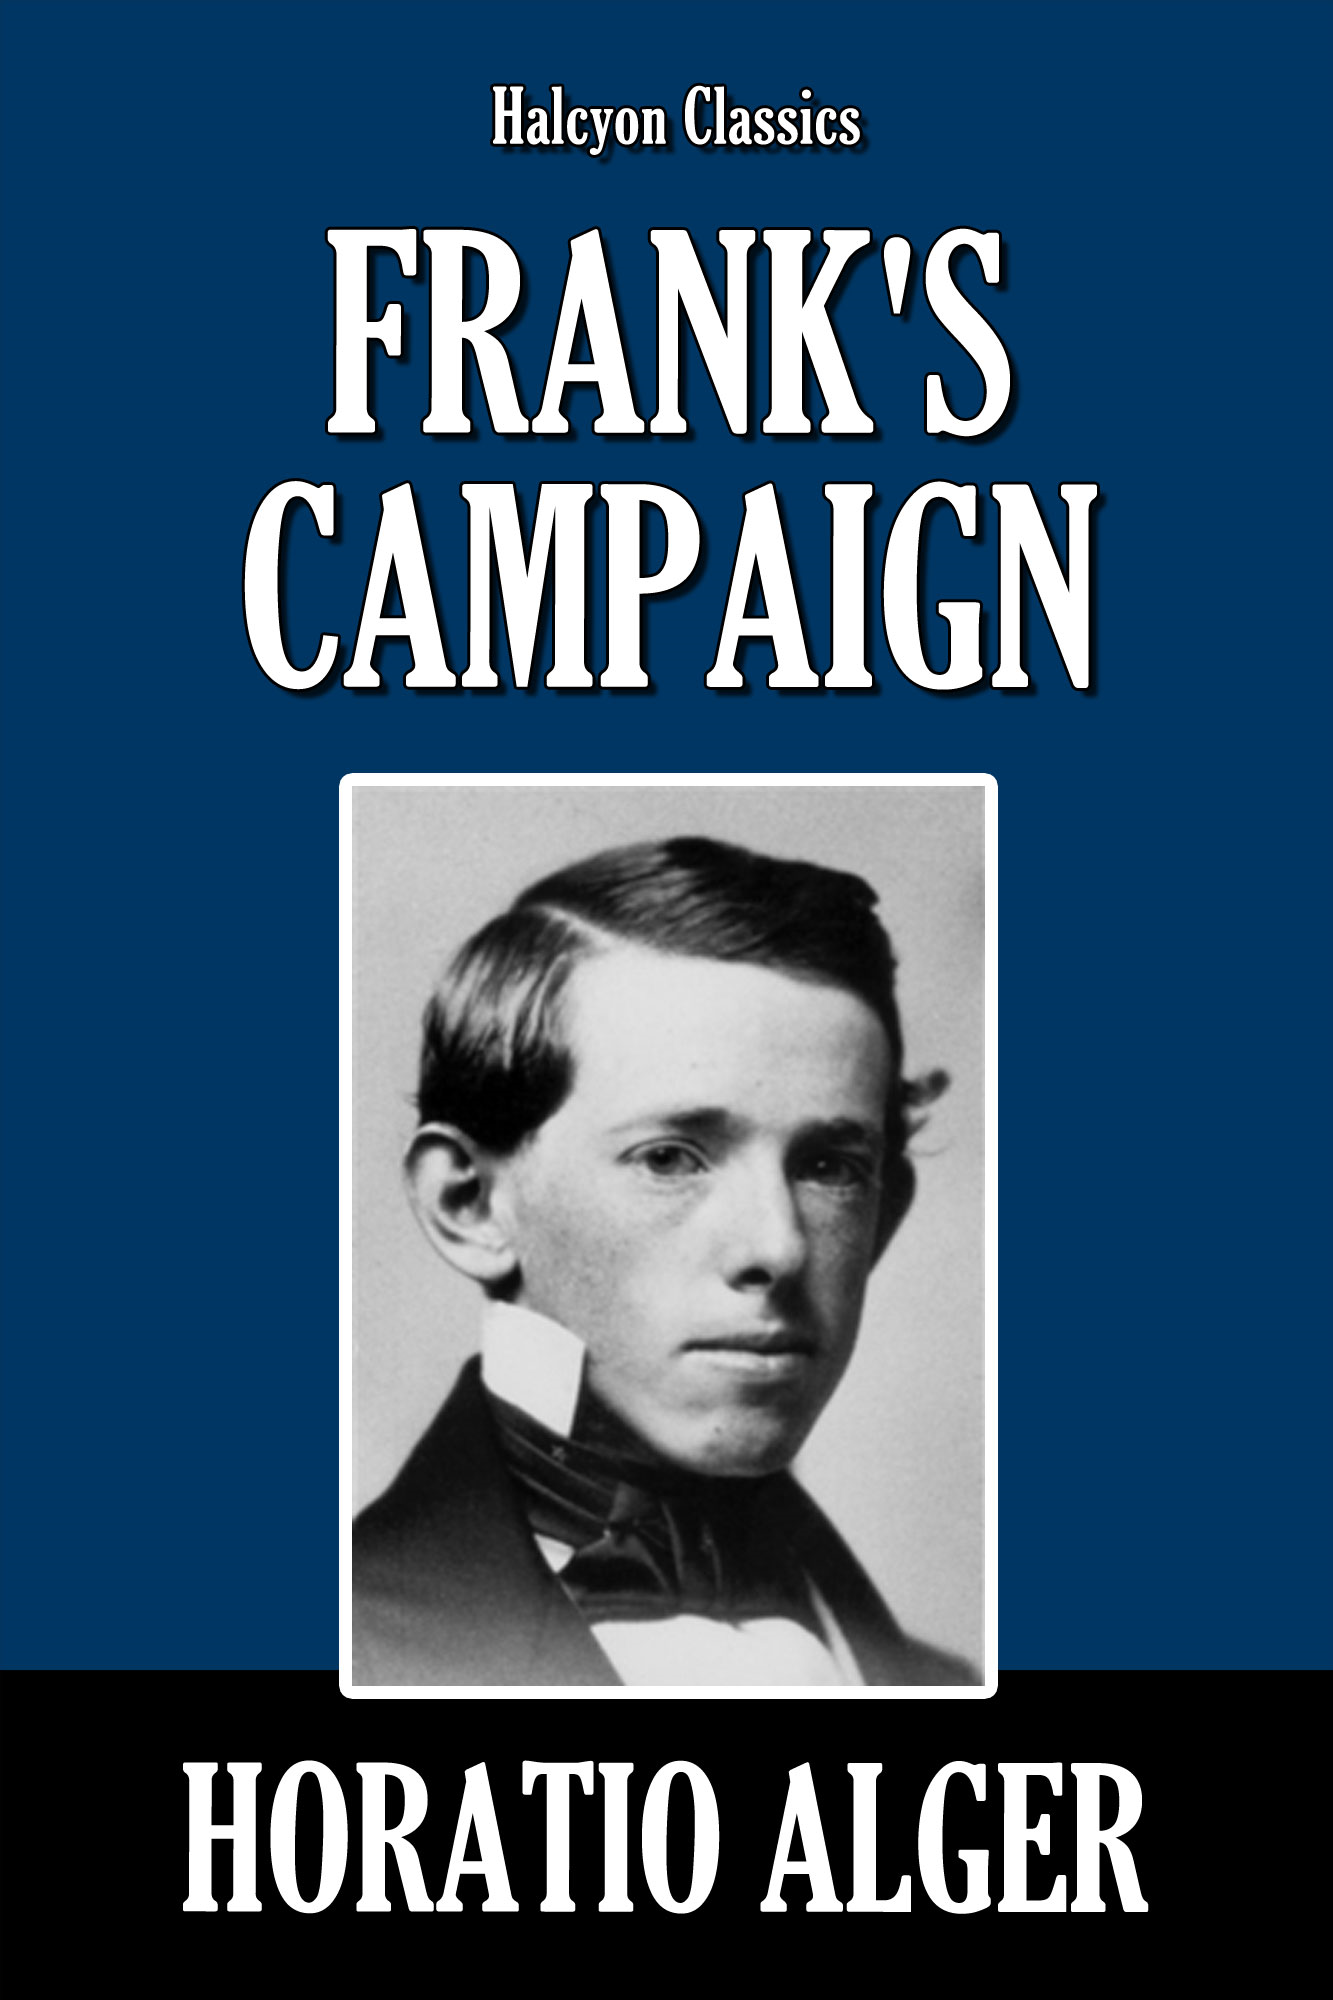 Frank's Campaign by Horatio Alger [Horatio Alger #1]